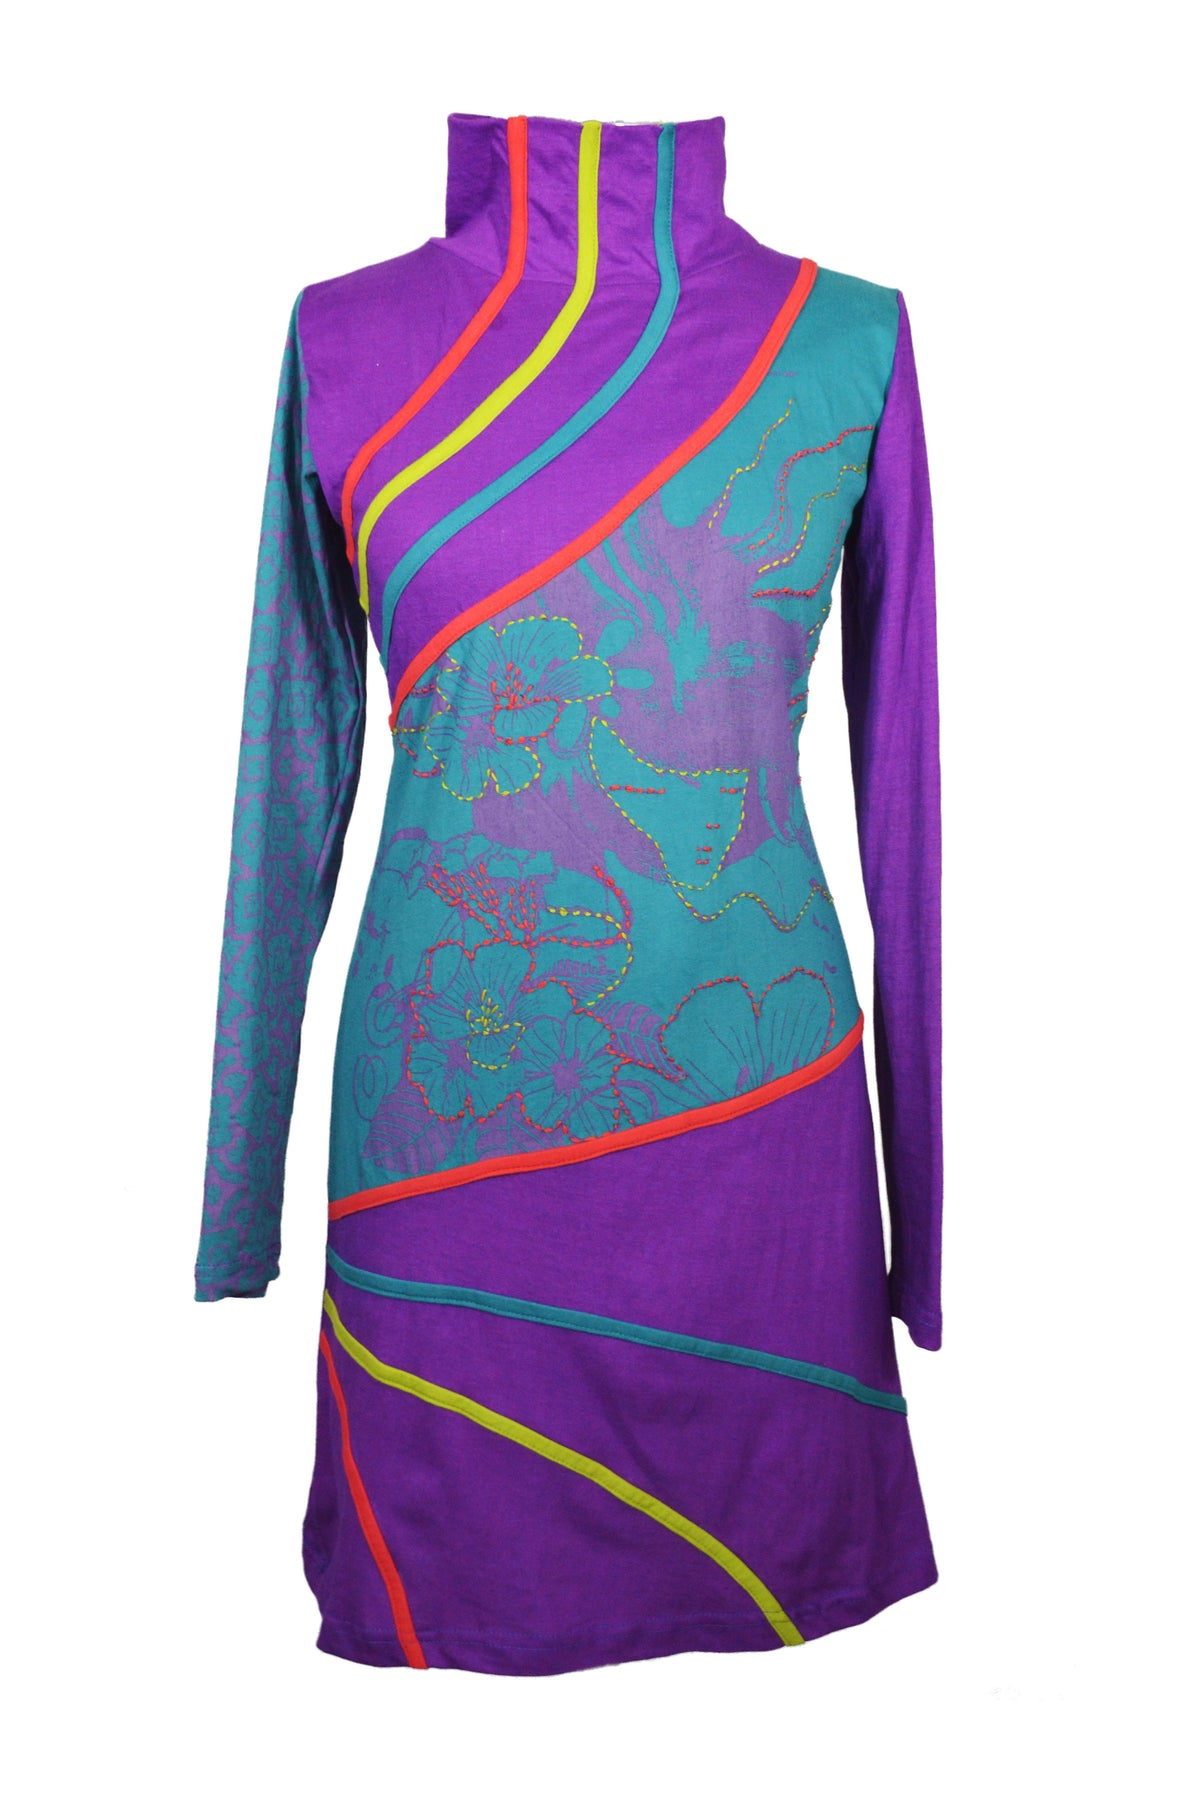 Hi-Neck Designed Dress With Patch And Embroidery. - Craze Trade Limited